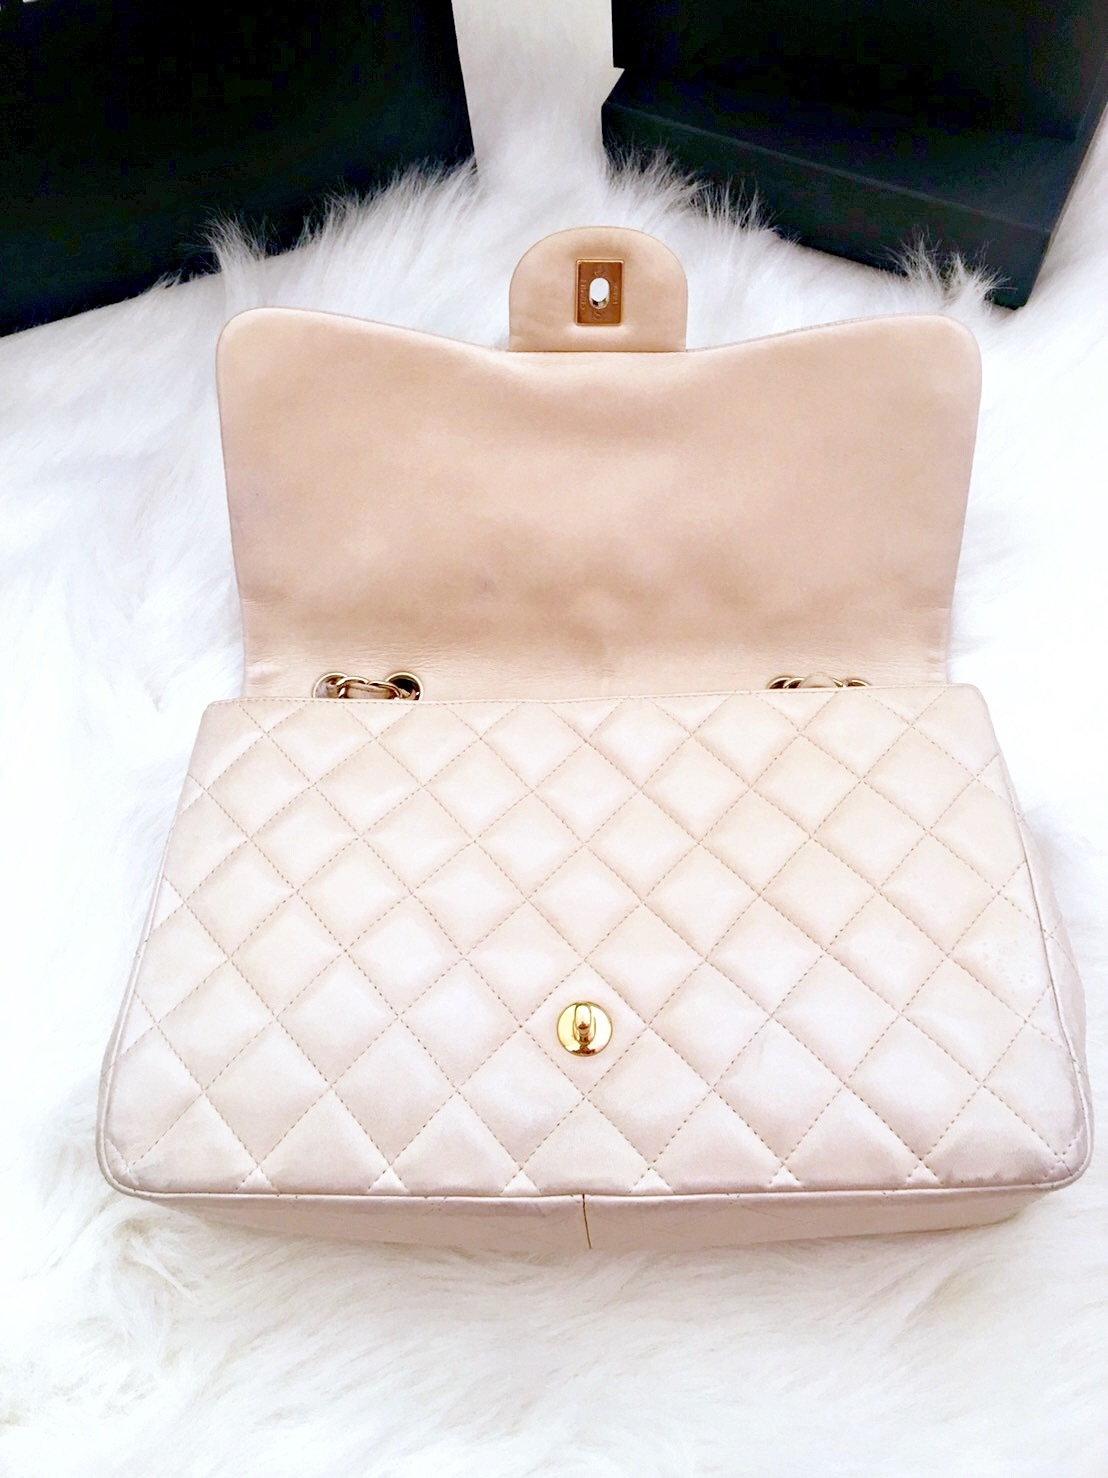 2439cdd24fe7a6 ... AUTHENTIC CHANEL BEIGE QUILTED LAMBSKIN JUMBO CLASSIC FLAP BAG GOLD  HARDWARE ...